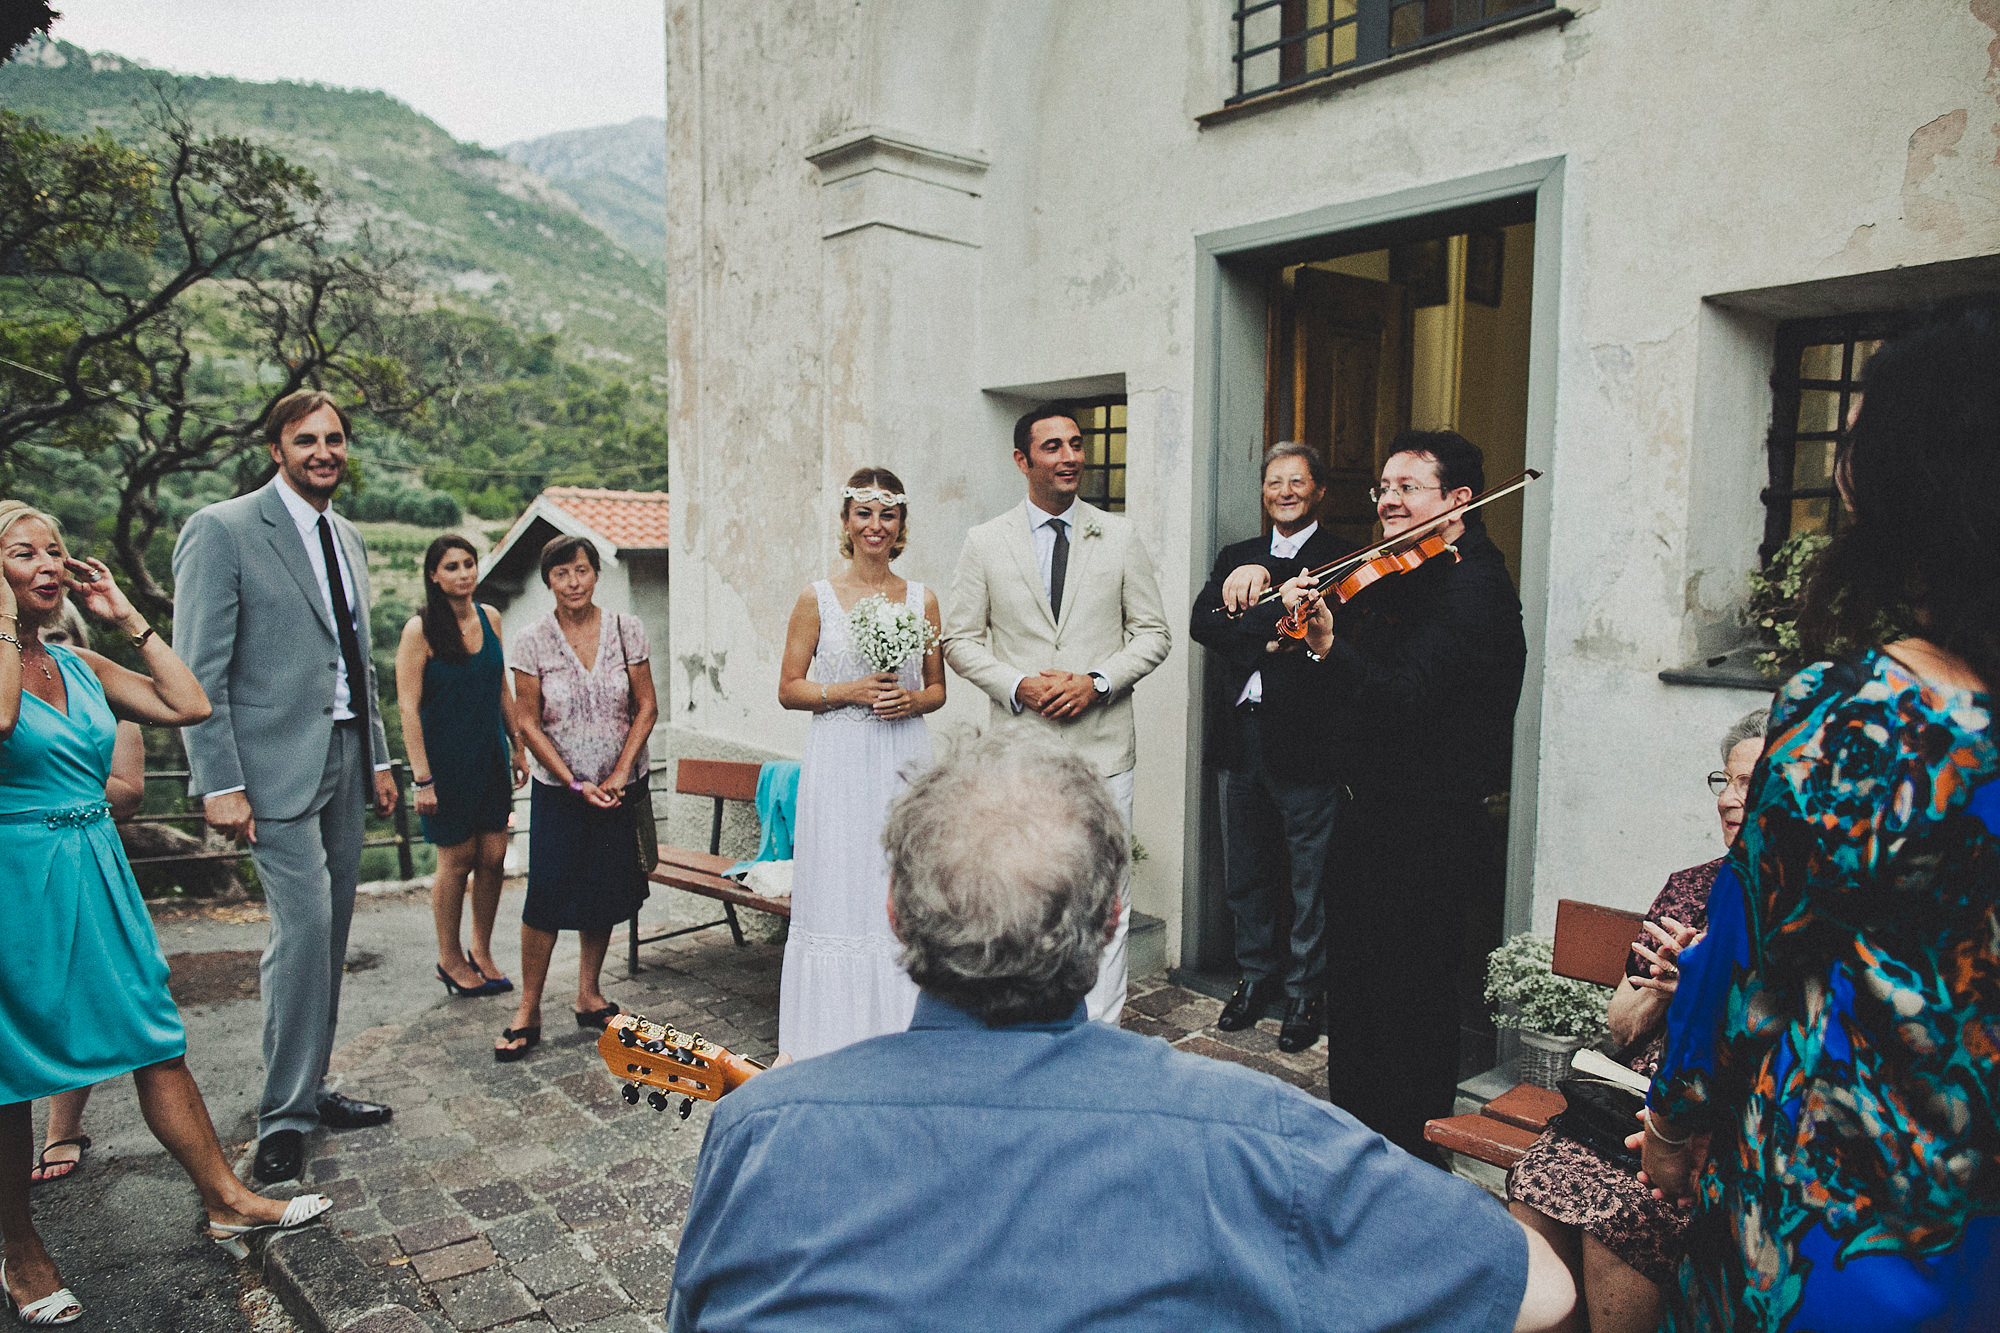 Bride and groom with guests and violinists - photo by Dan O'Day